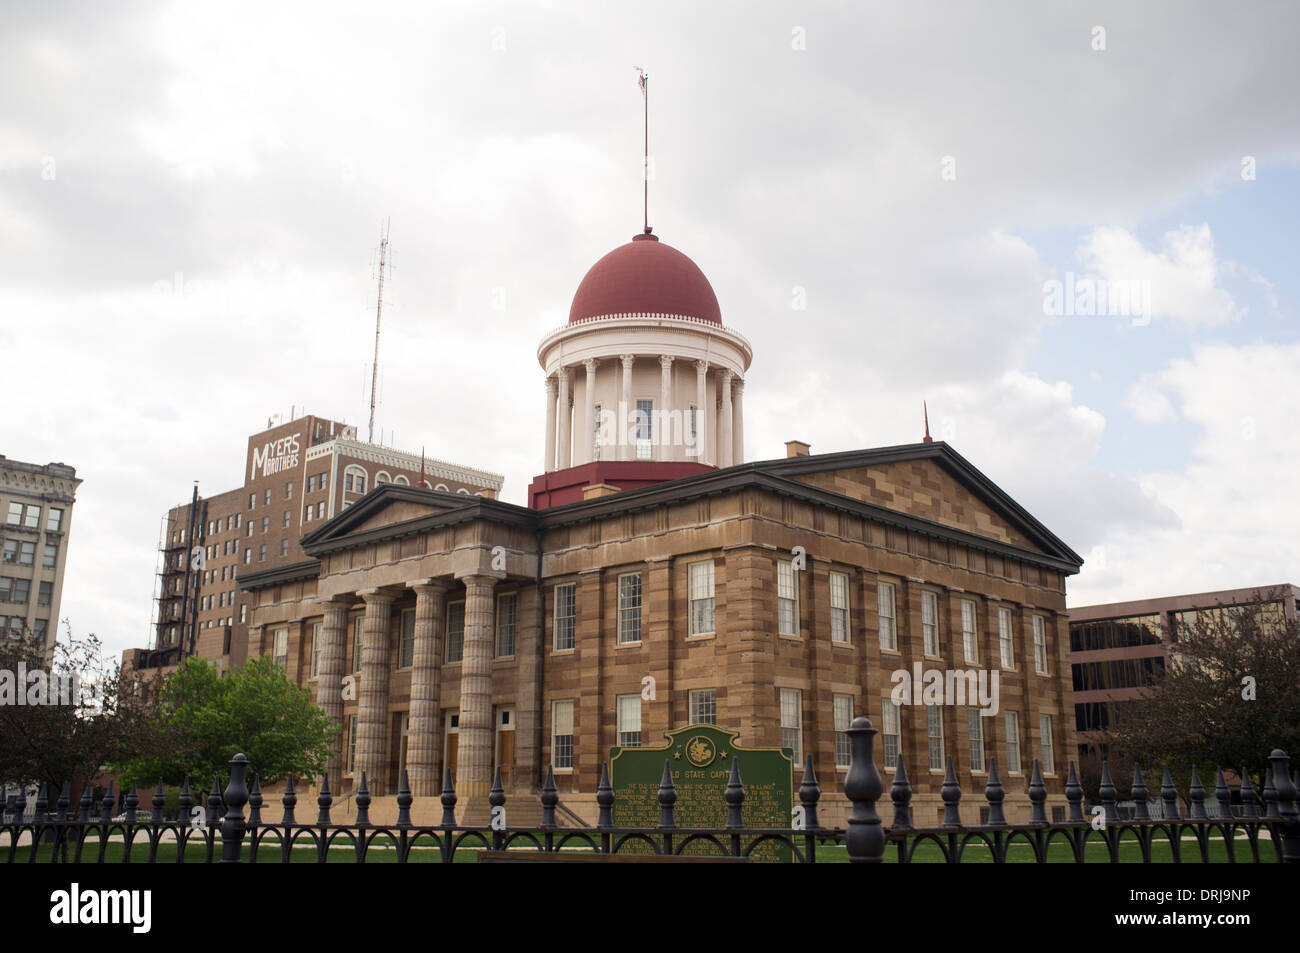 The Old State Capitol building in Springfield, Illinois on Apr. 23, 2012. - Stock Image